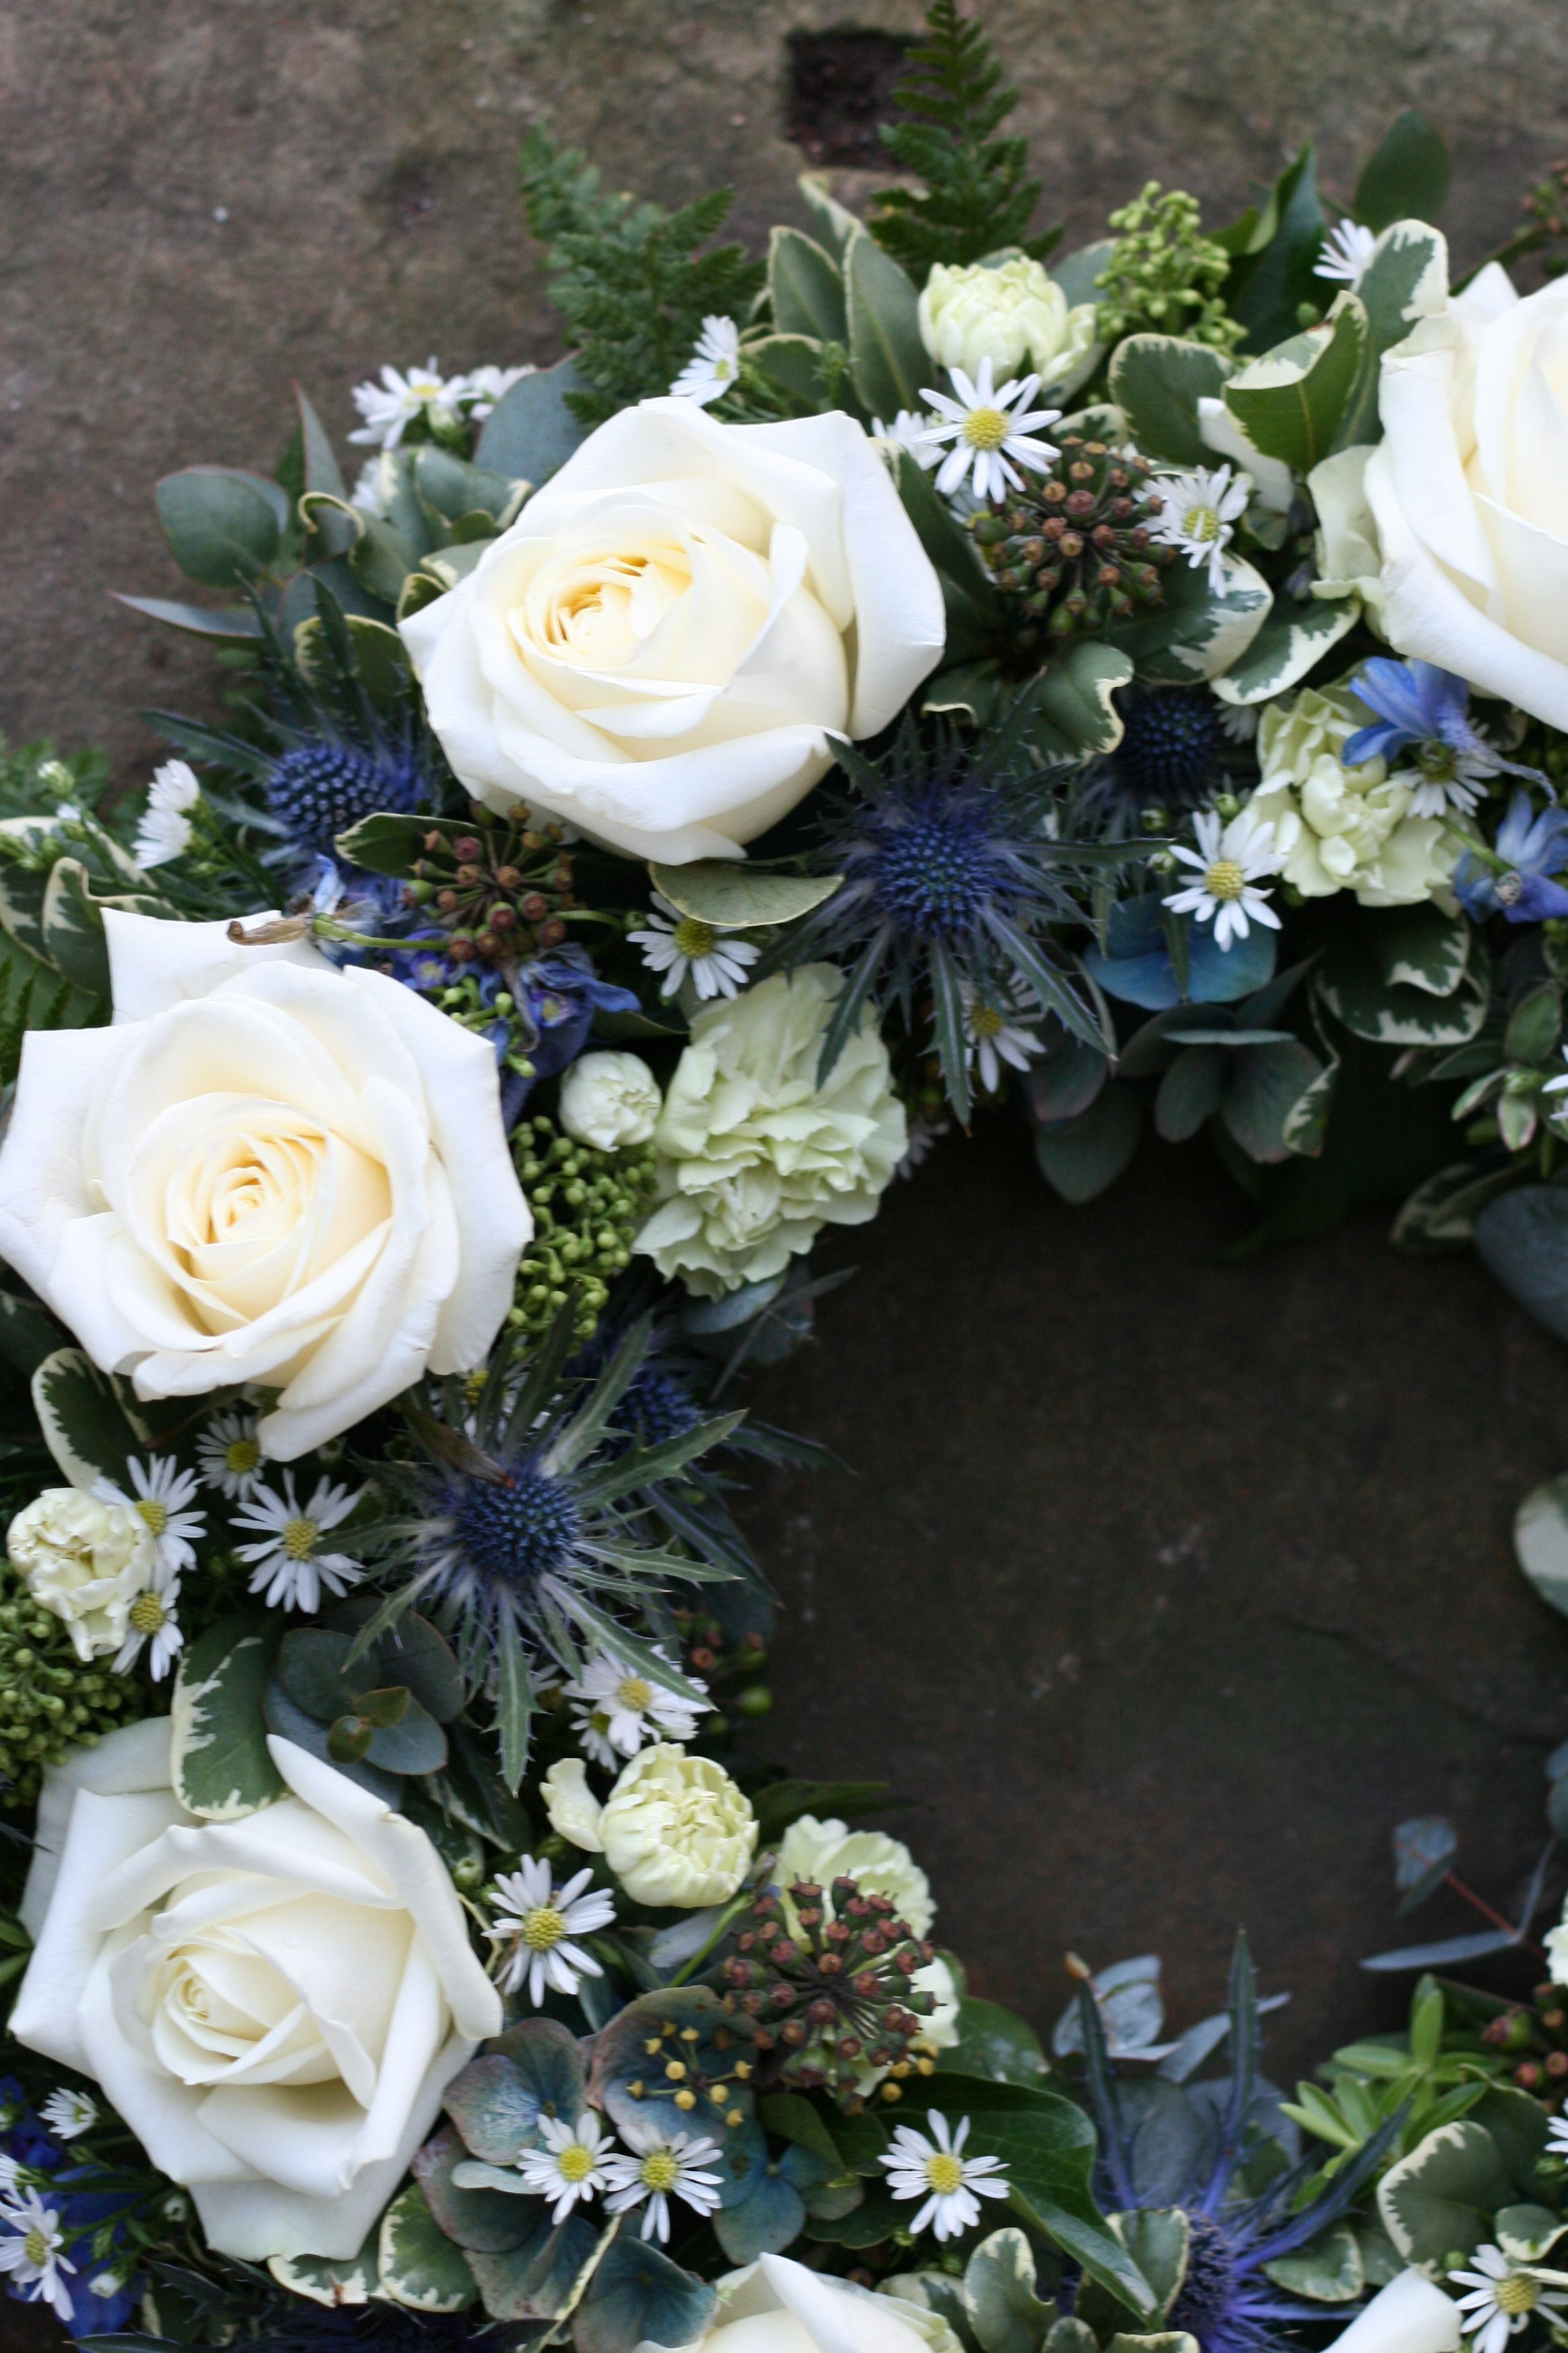 Cream avalanche and blue thistles an elegant tribute for a cream avalanche and blue thistles wreath this is an elegant tribute for his funeral or memorial service izmirmasajfo Choice Image